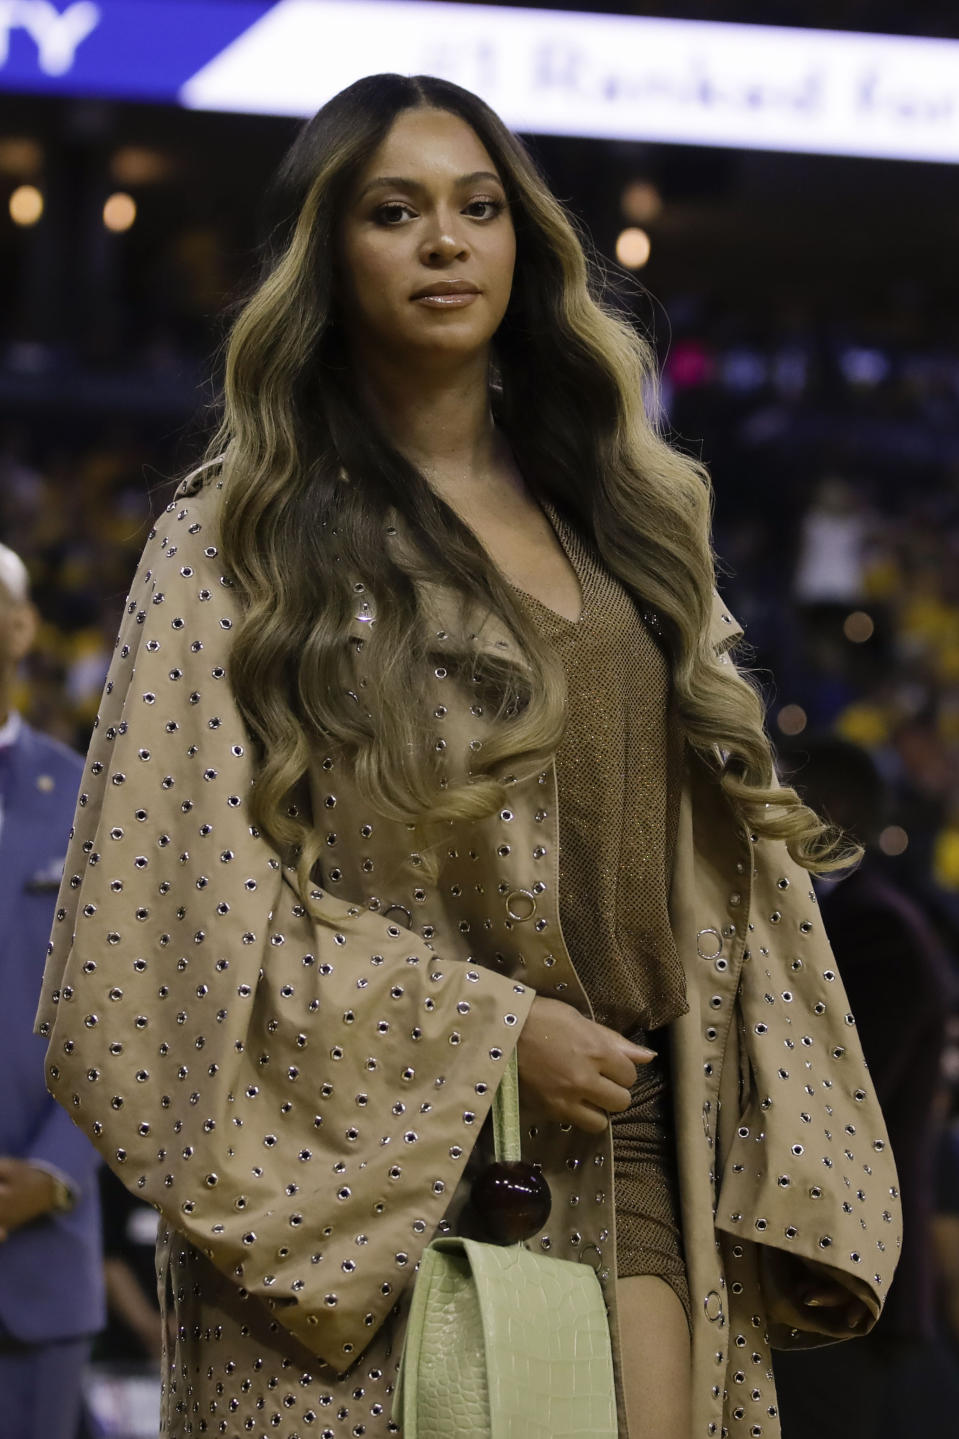 Beyonce walks to her seat during the first half of Game 3 of basketball's NBA Finals between the Golden State Warriors and the Toronto Raptors in Oakland, Calif., Wednesday, June 5, 2019. (AP Photo/Ben Margot)